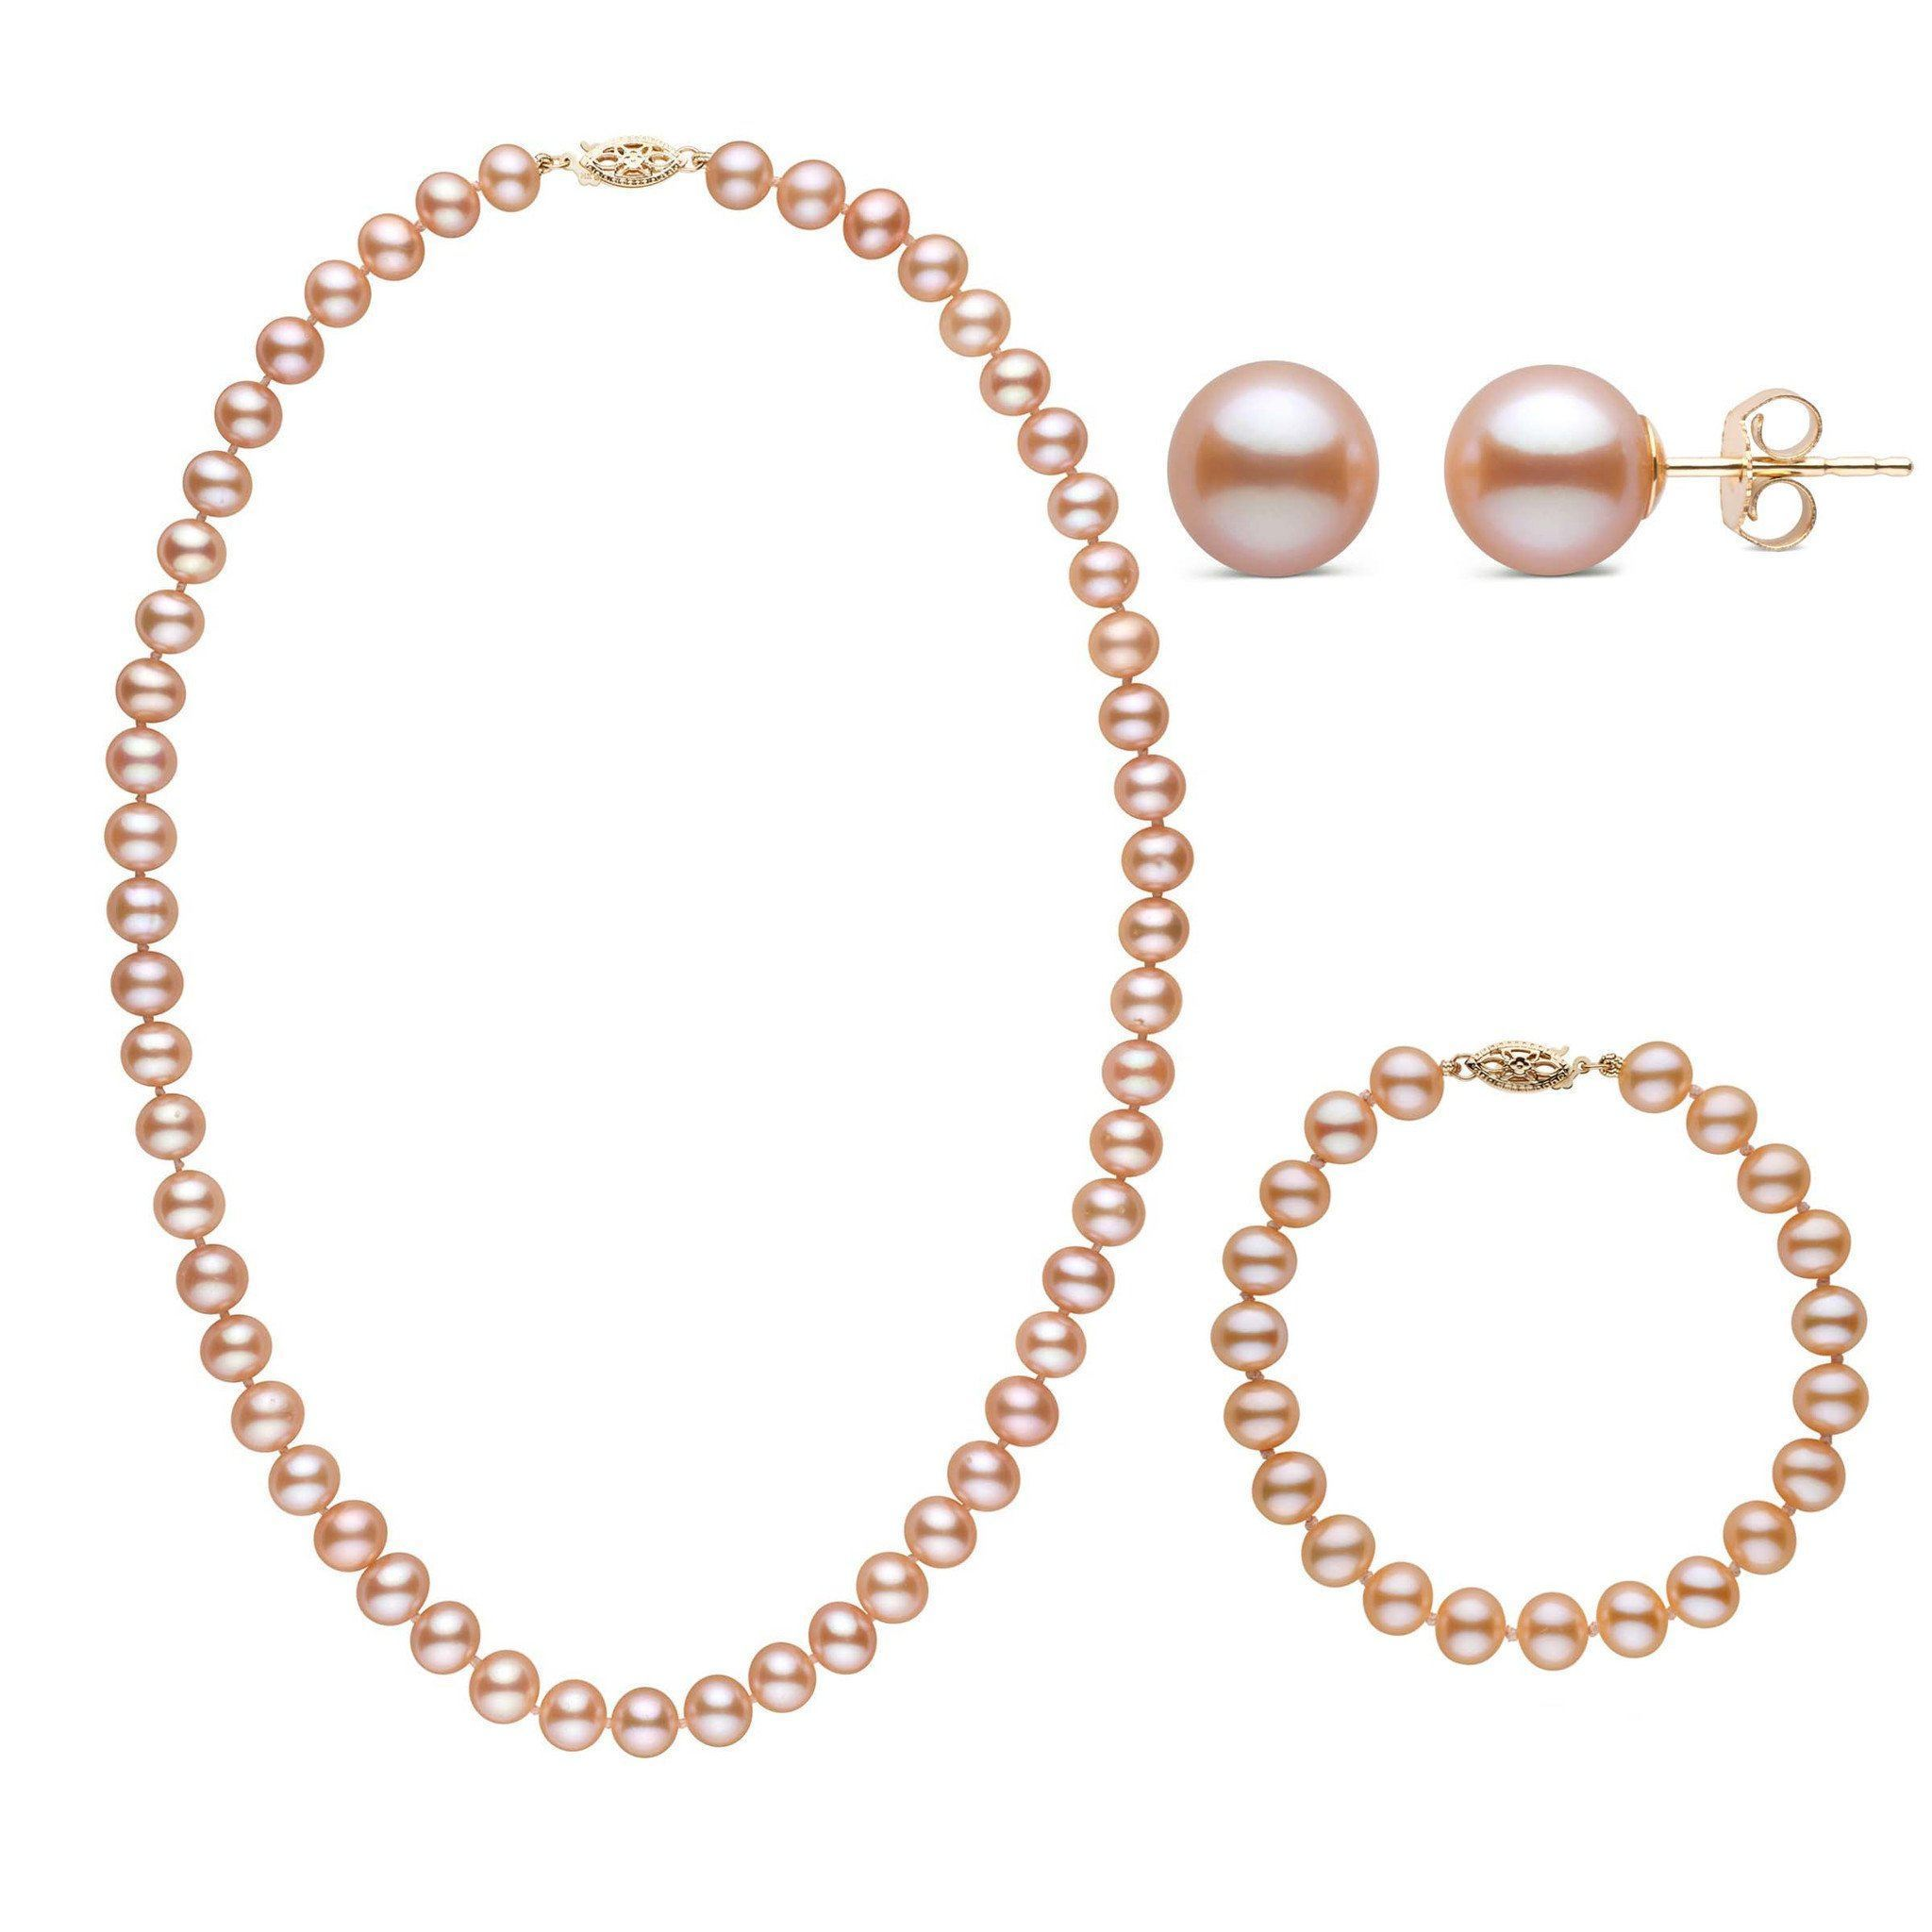 18 Inch 3 Piece Set of 7.5-8.0 mm AA+ Pink Freshwater Pearls